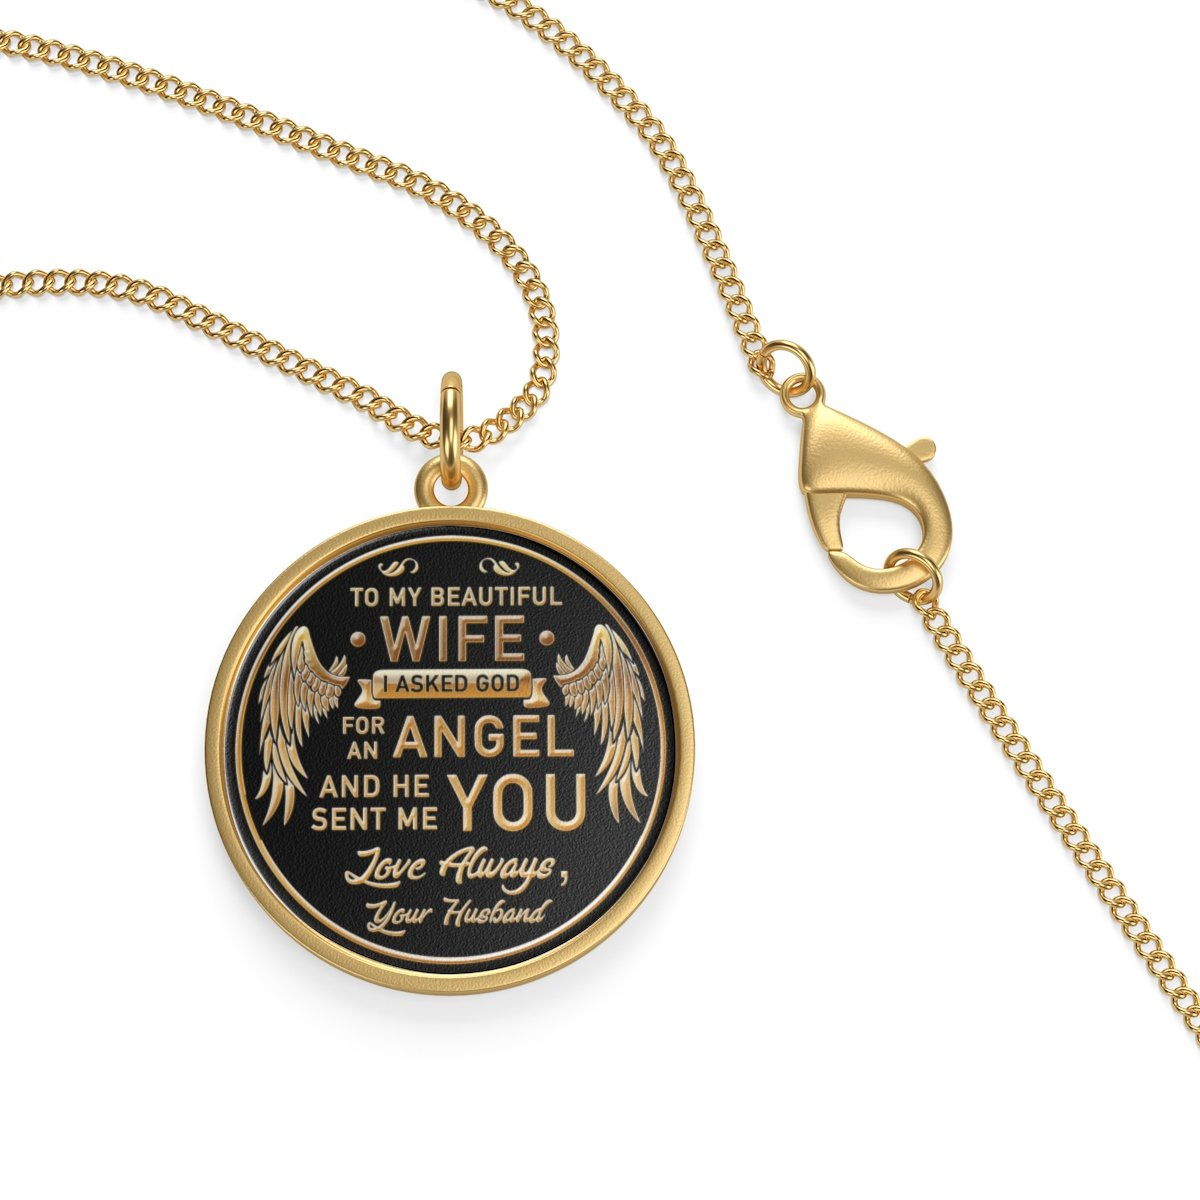 To My Wife God Sent Me You Necklace